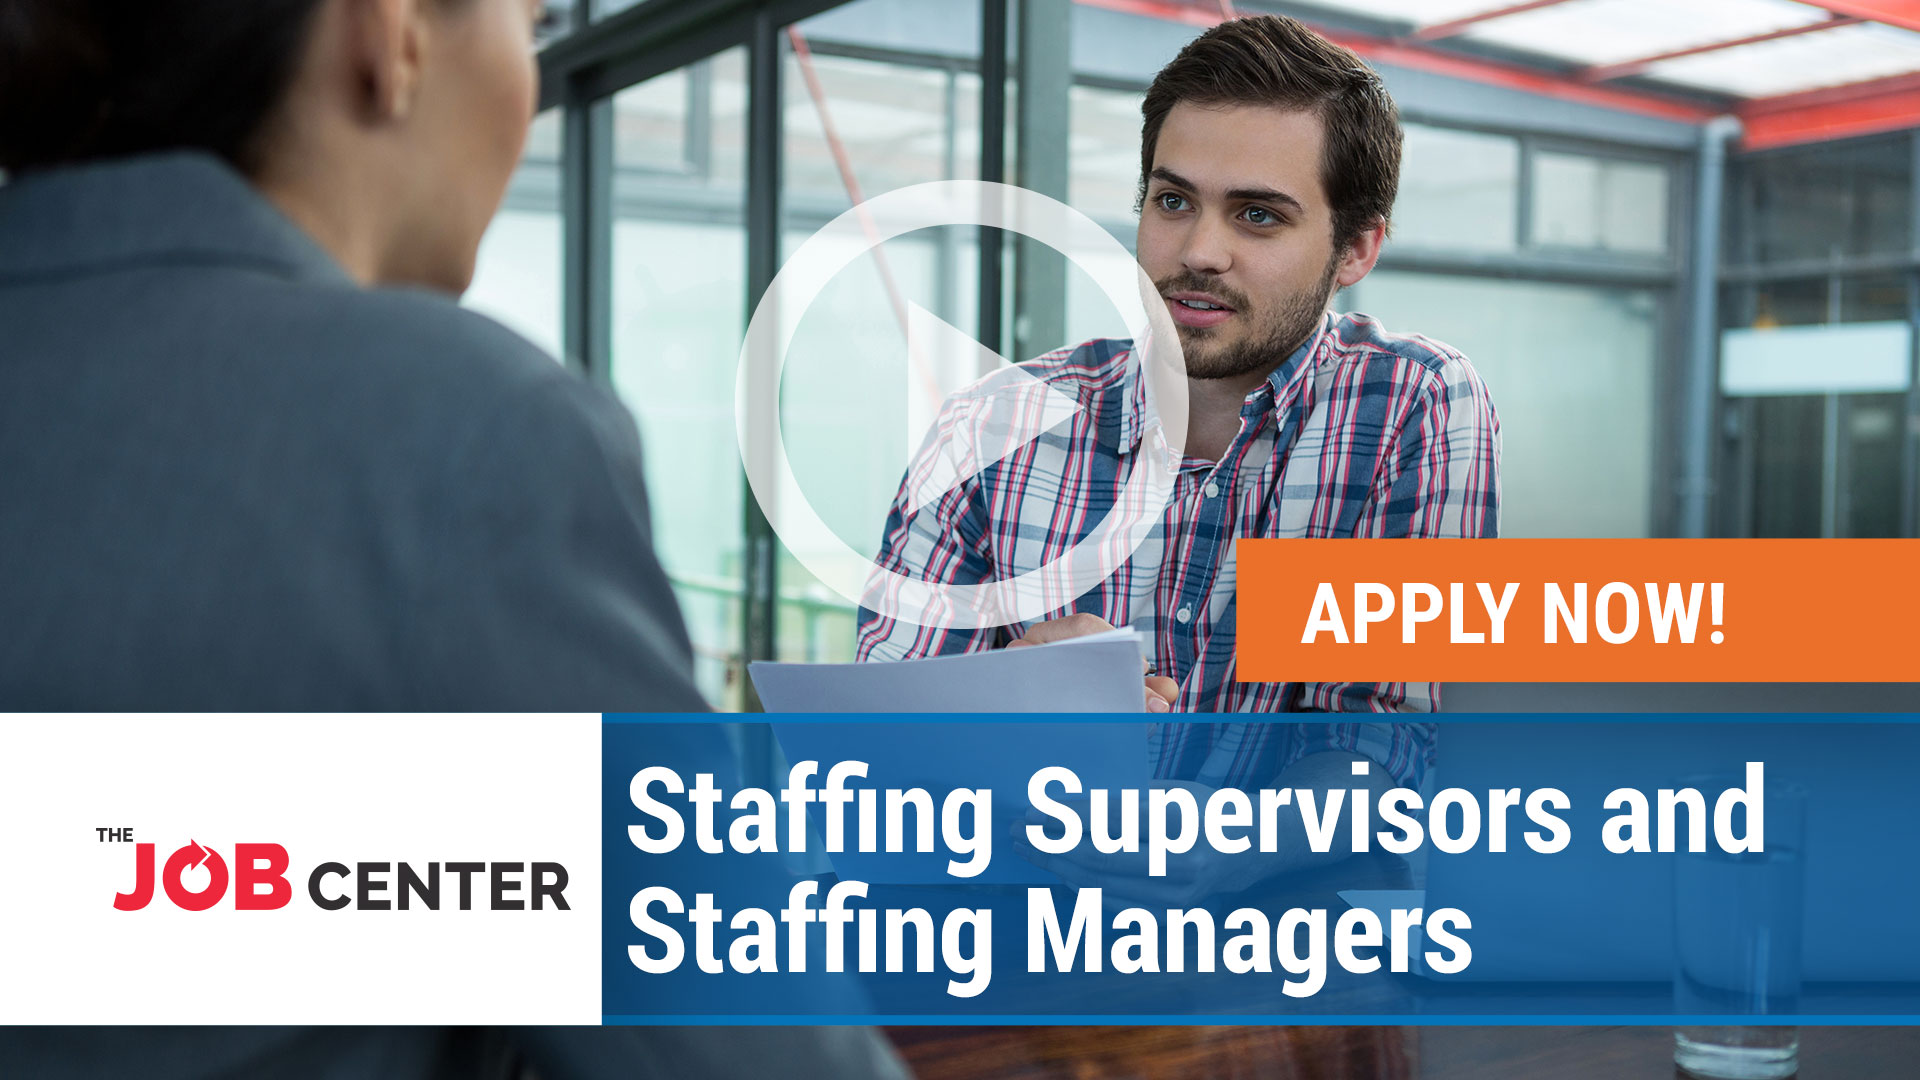 Watch our careers video for available job opening Staffing Supervisors and Staffing Managers in Multiple, Ohio/ Kentucky/ Indiana/ New Hampshire/ Texas